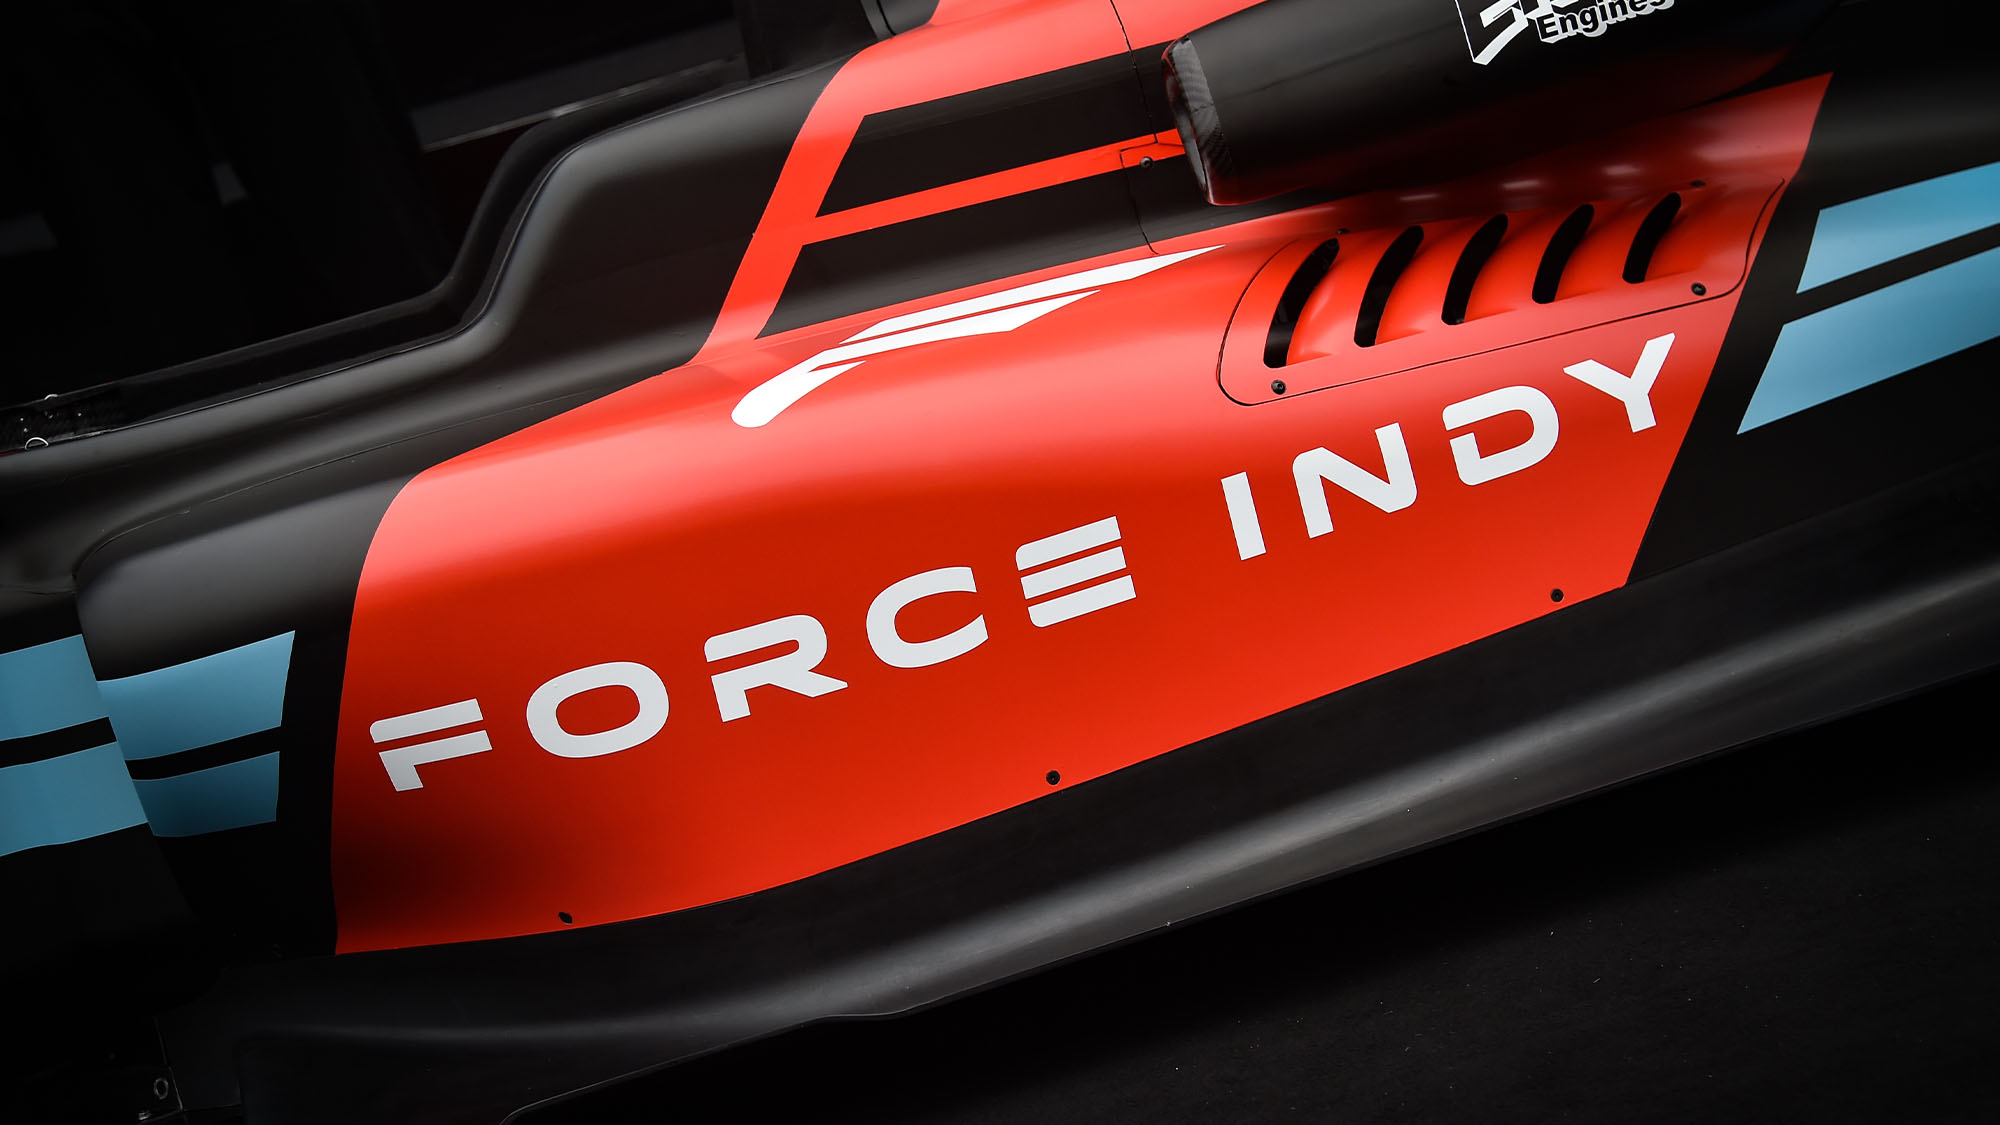 How Force Indy is opening up motor sport: the world's first ethnic minority racing team